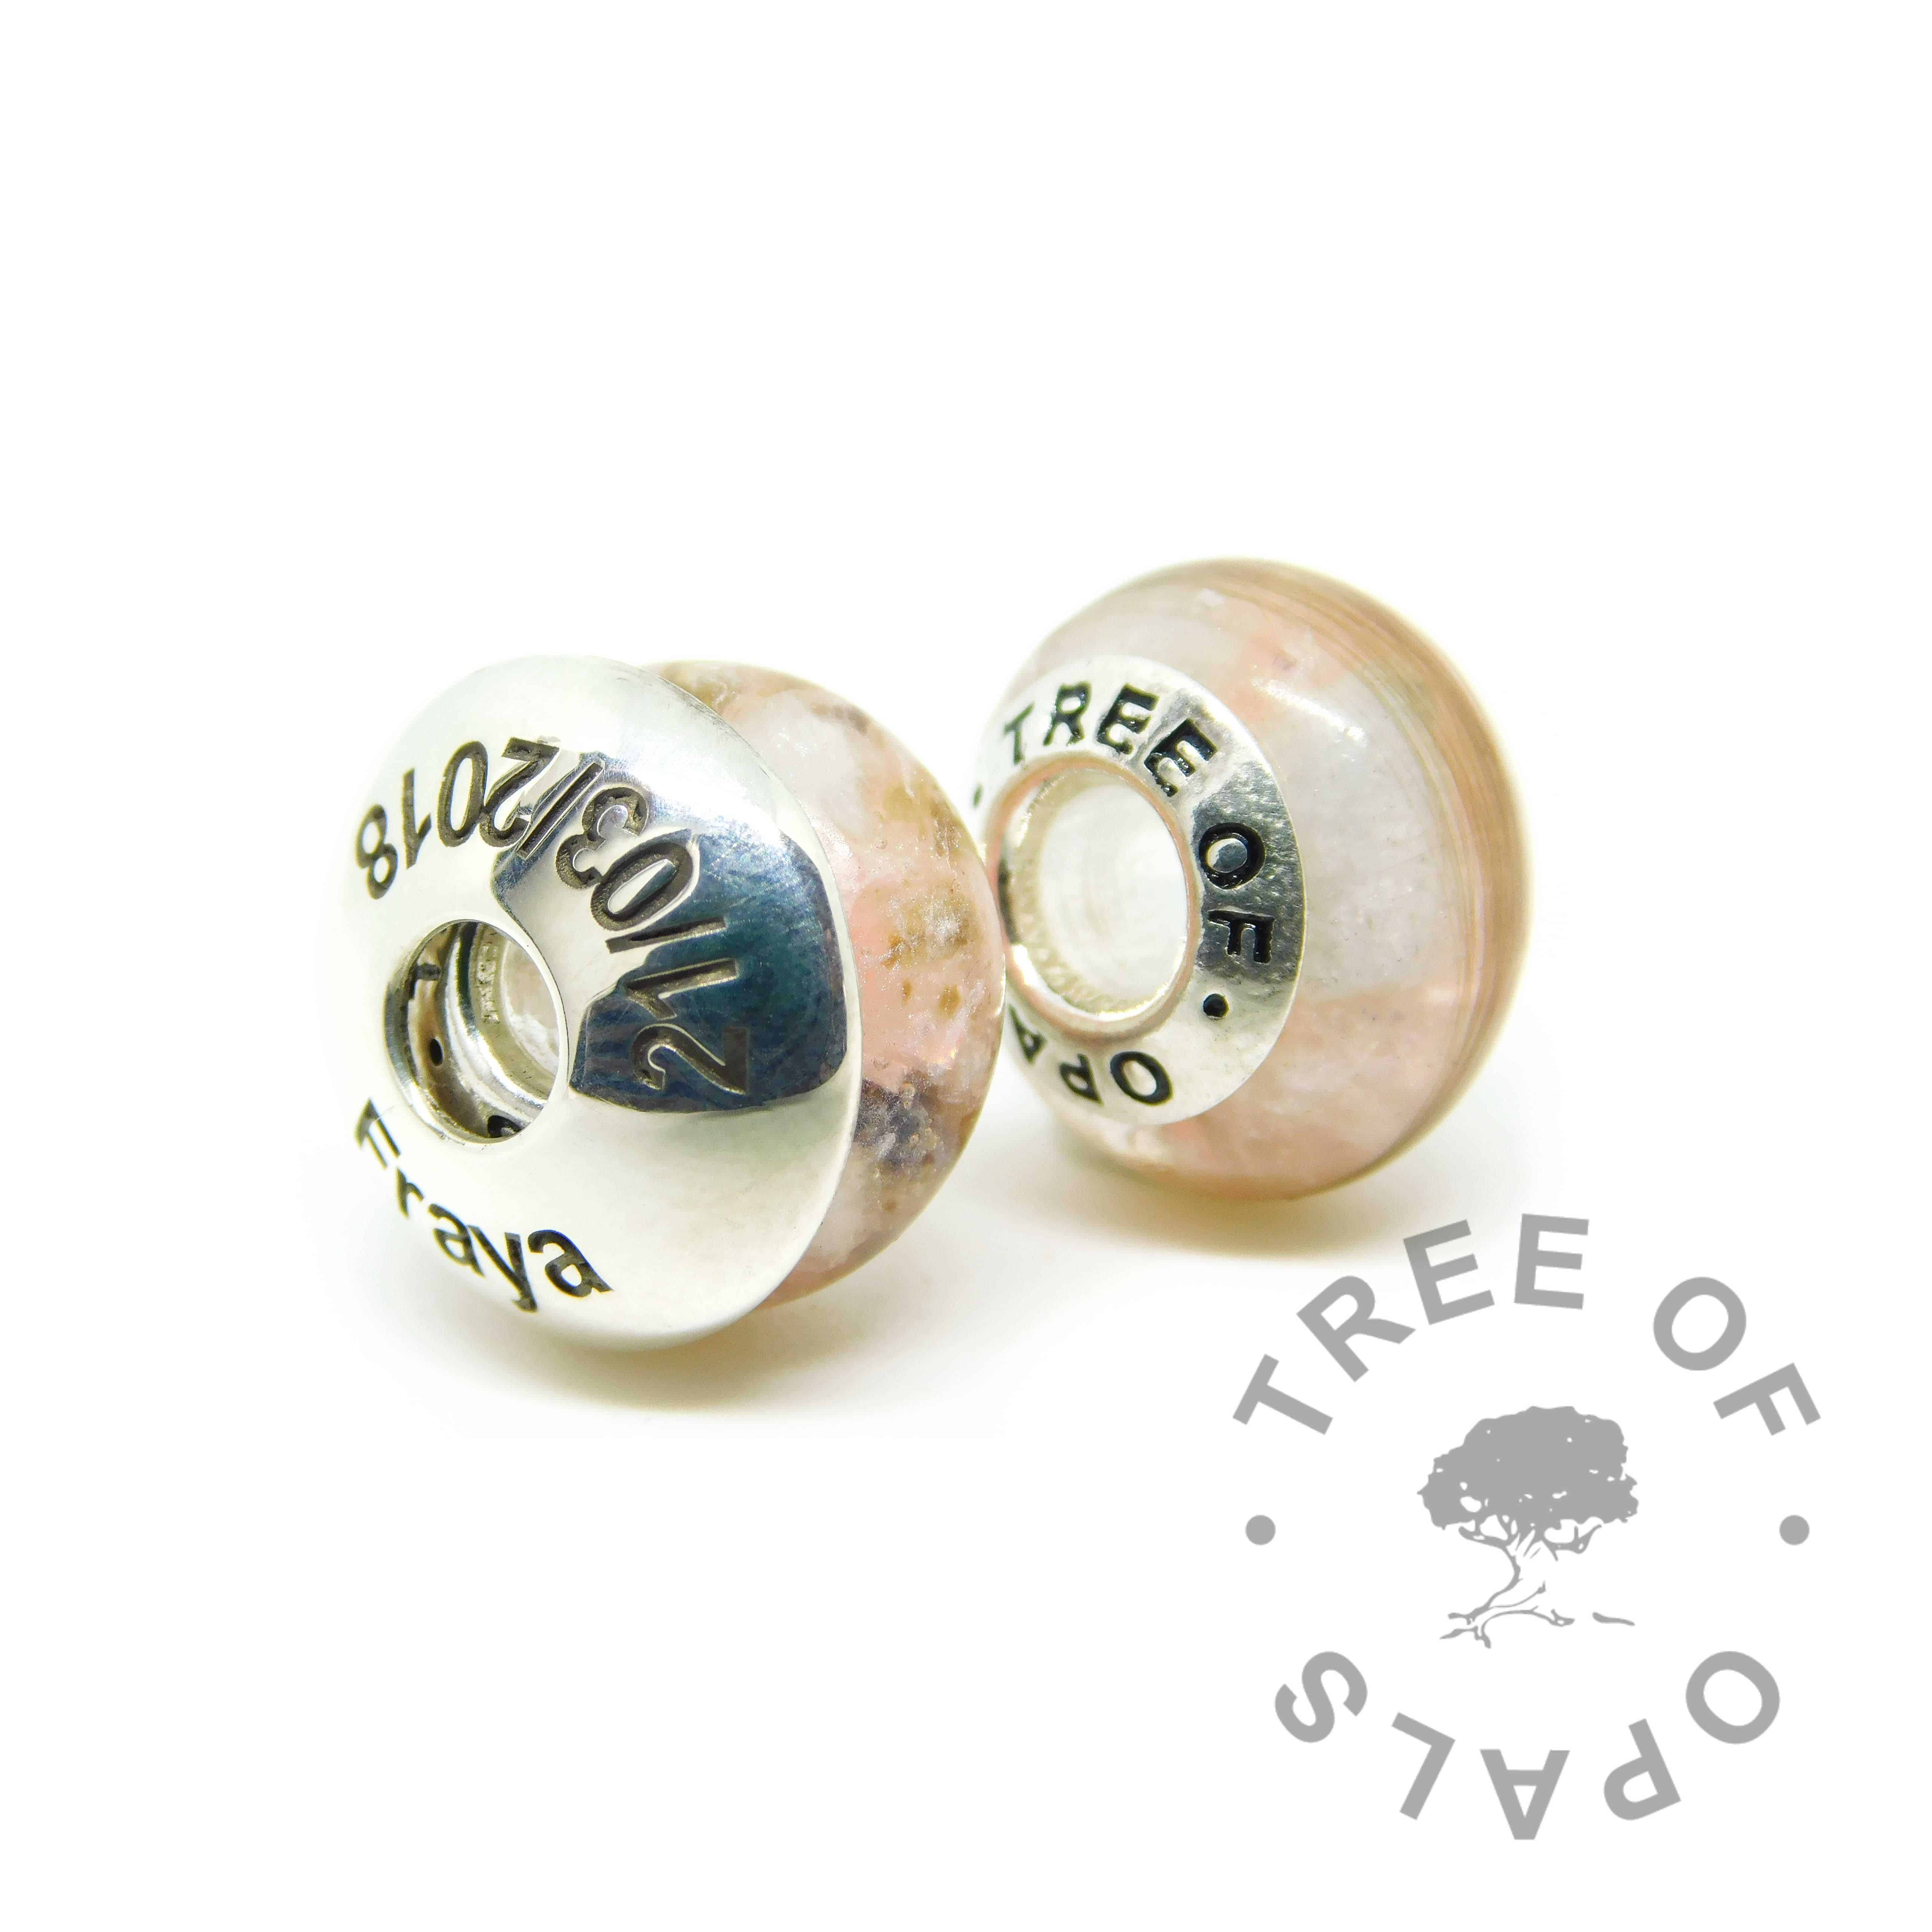 Umbilical cord and first curl charm duo. Both with fairy pink resin sparkle mix, March birthstone aquamarine. Set with solid sterling silver Tree of Opals core for Chamilia and Pandora bracelets. Watermarked copyright image by Tree of Opals